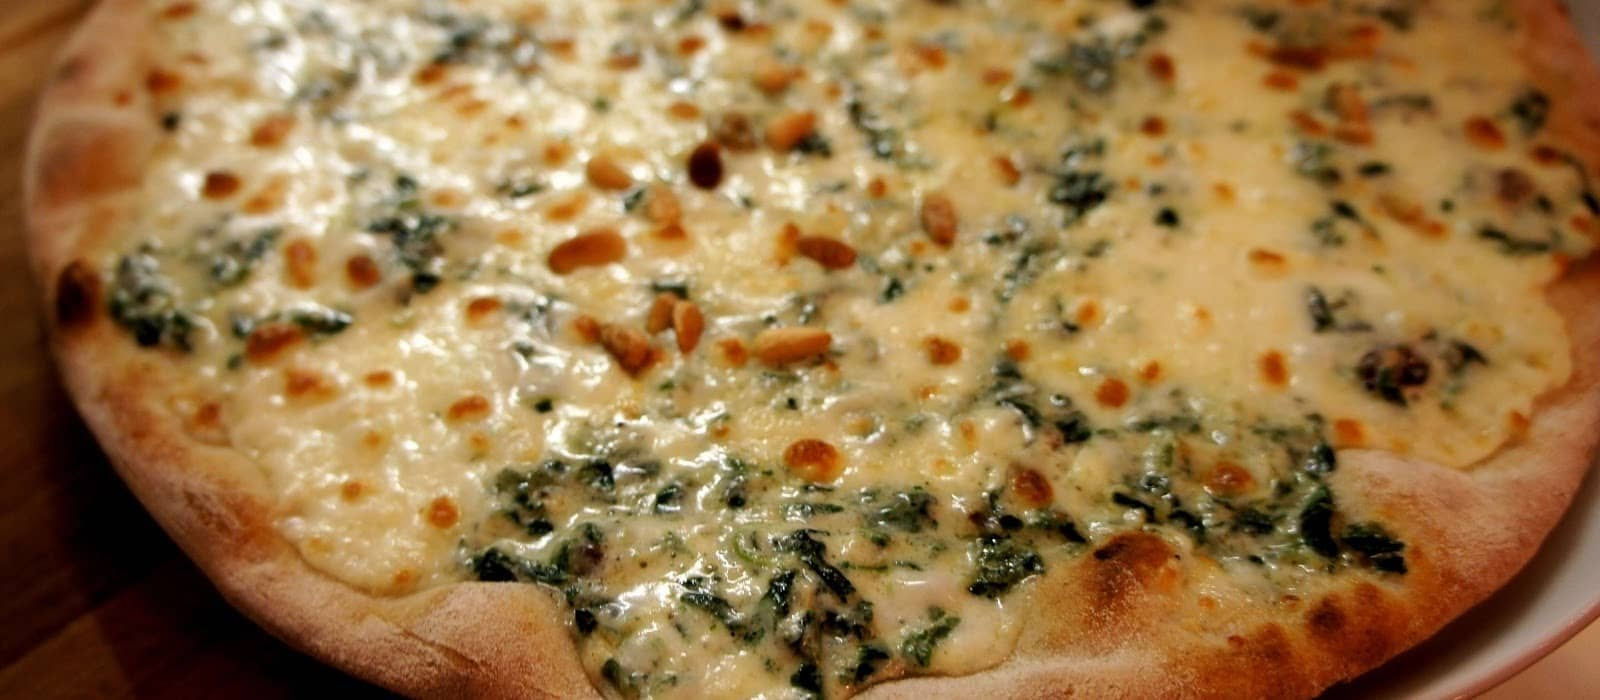 Signature pizza with burrata cheese, spinach and pine nuts.